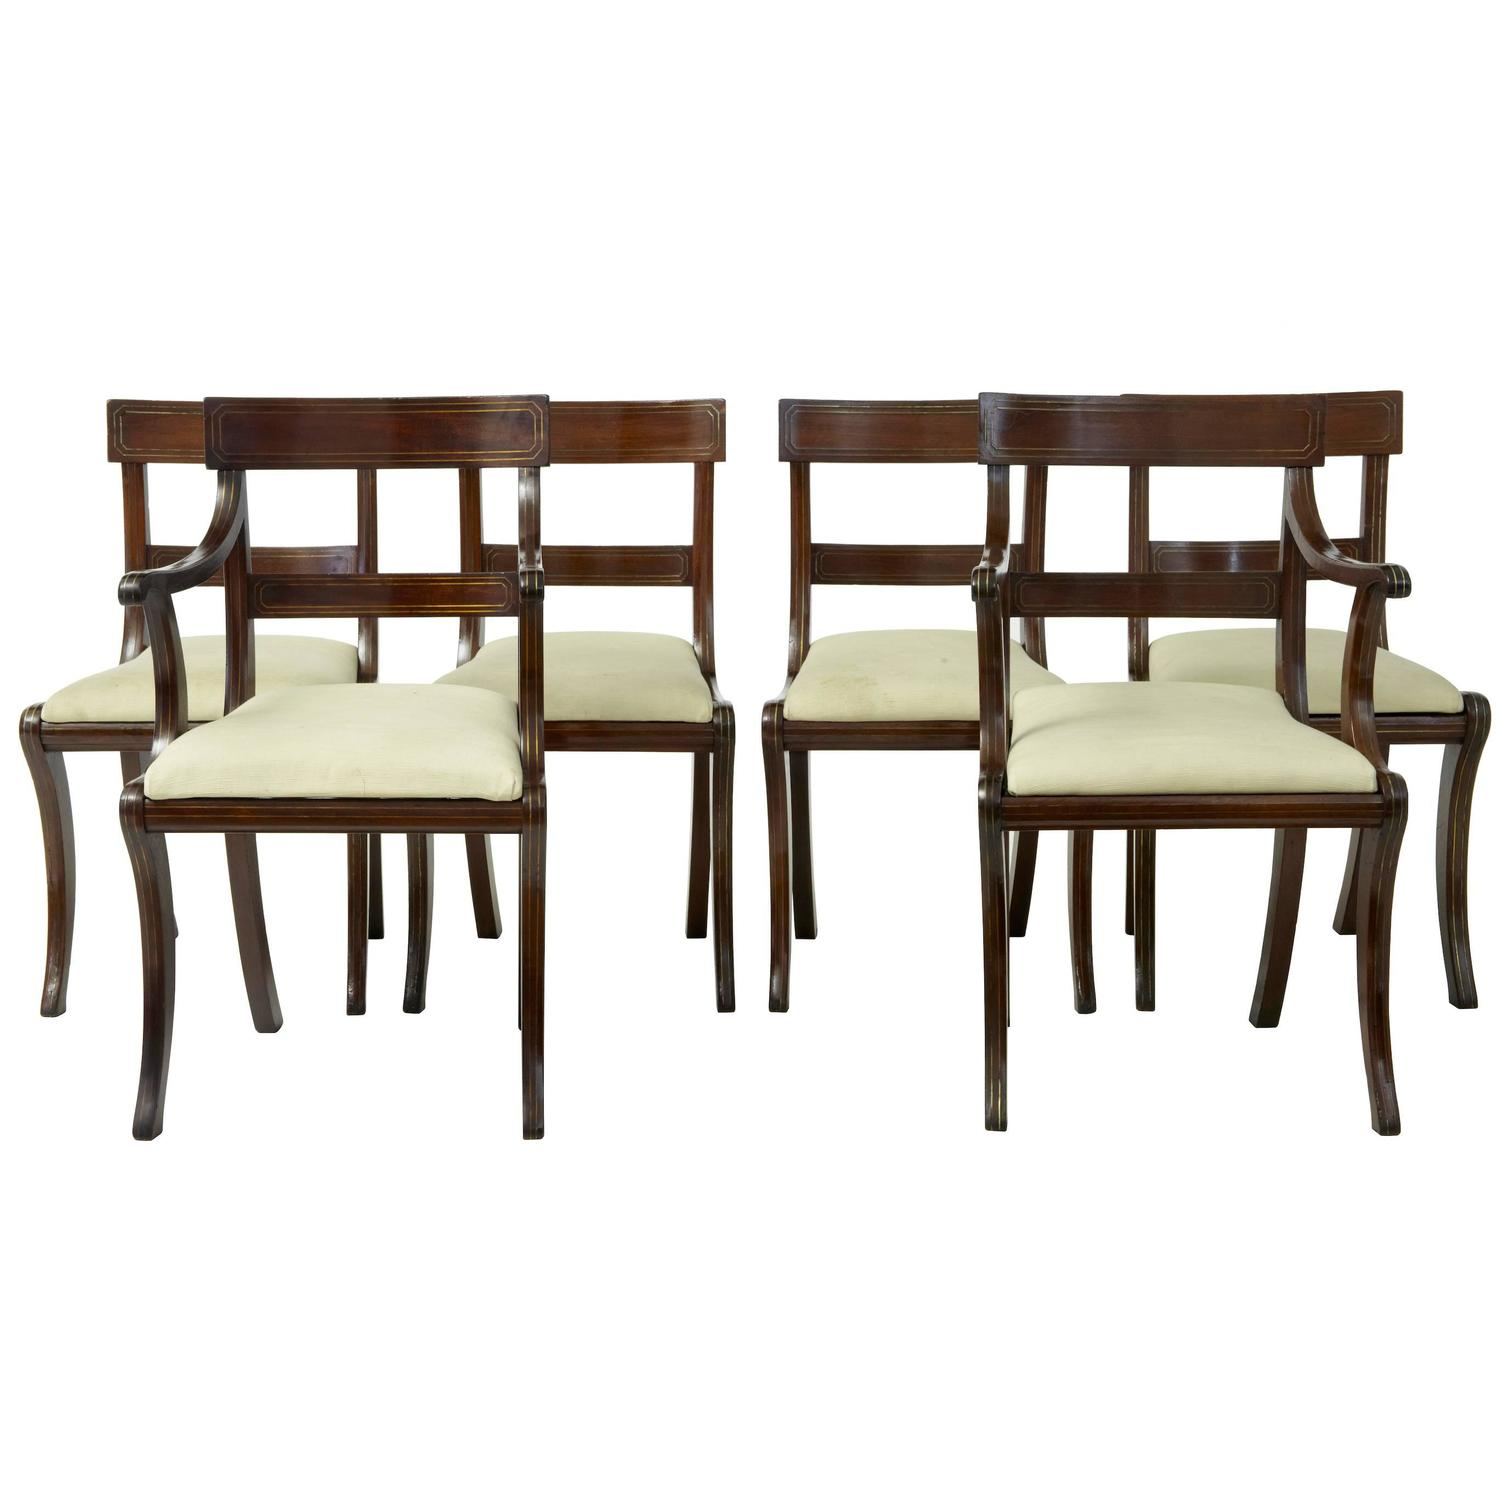 1920s Set of Six Regency Influenced Mahogany Brass Inlaid Dining